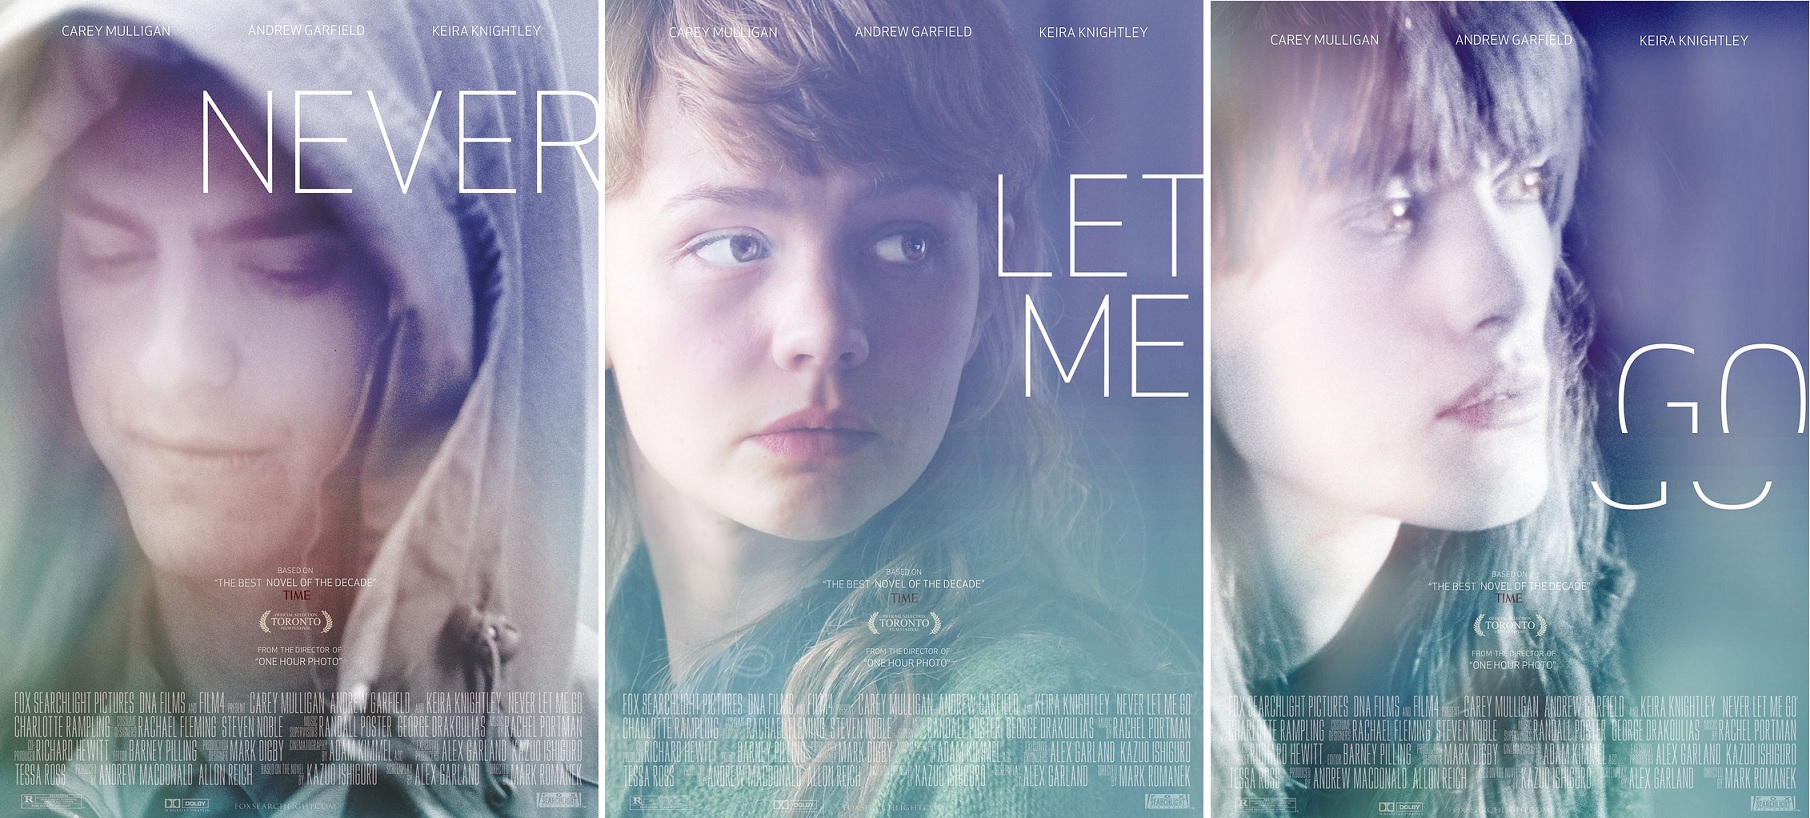 Never Let Me Go(2010)